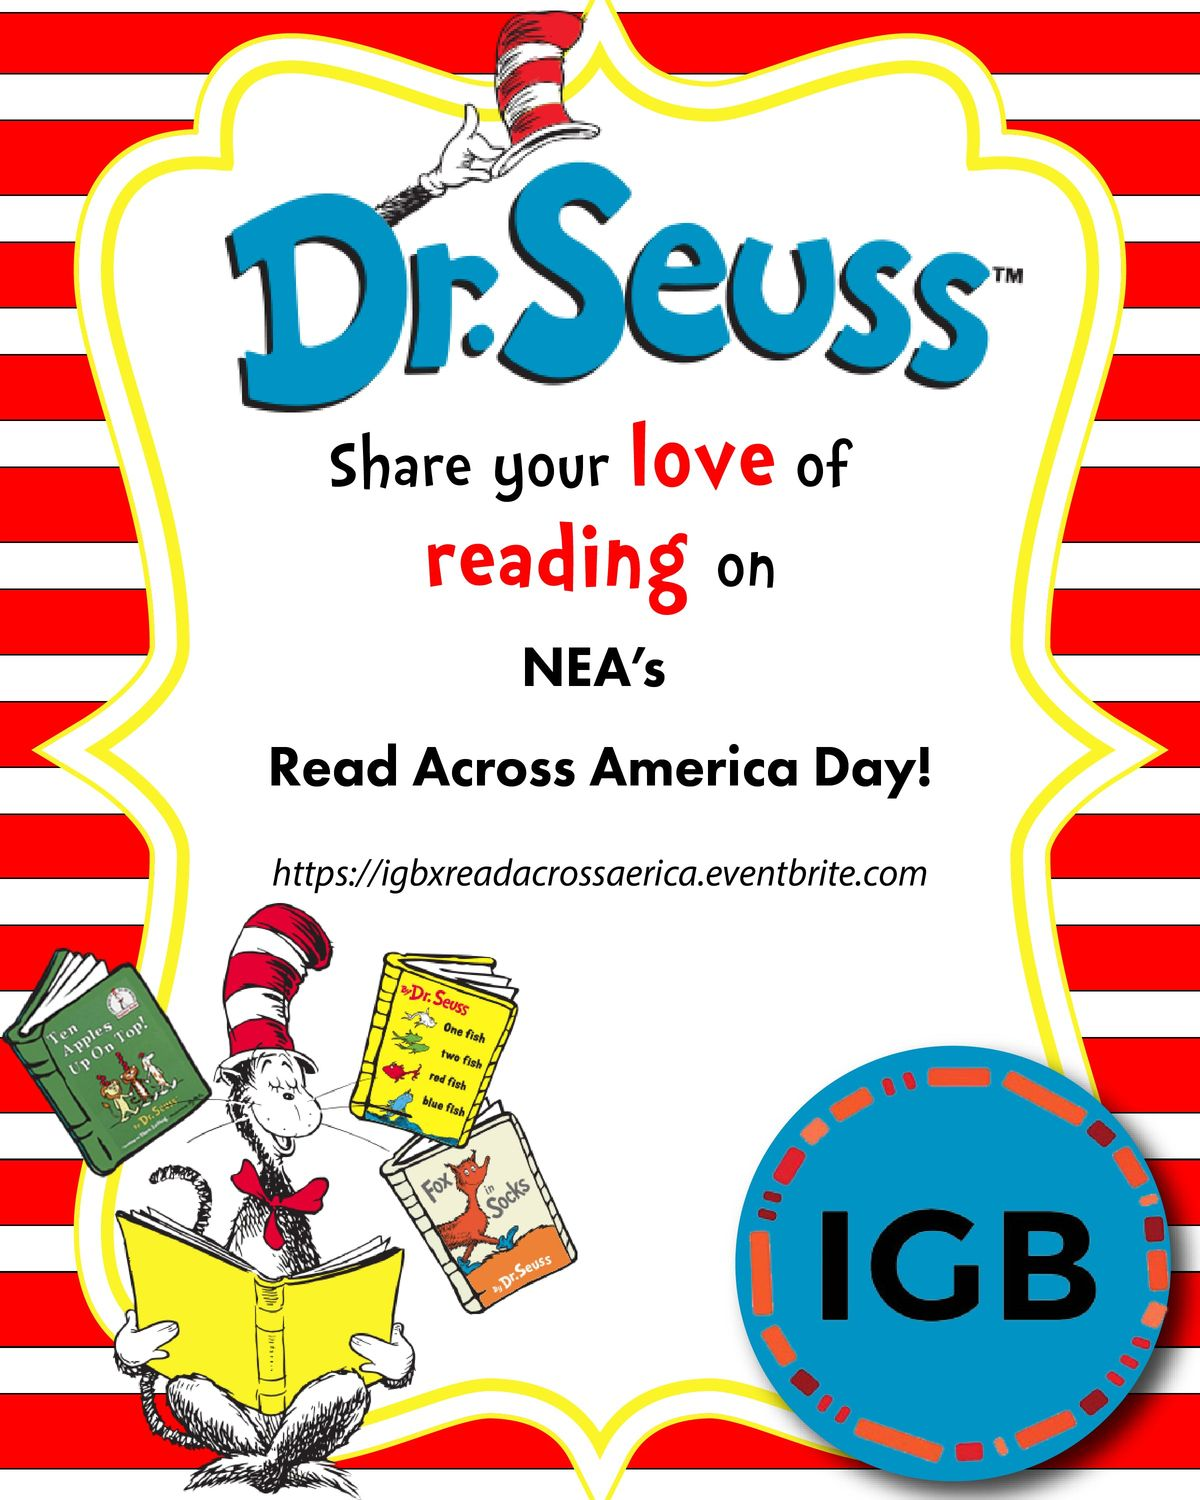 IGB takes Read Across America Day